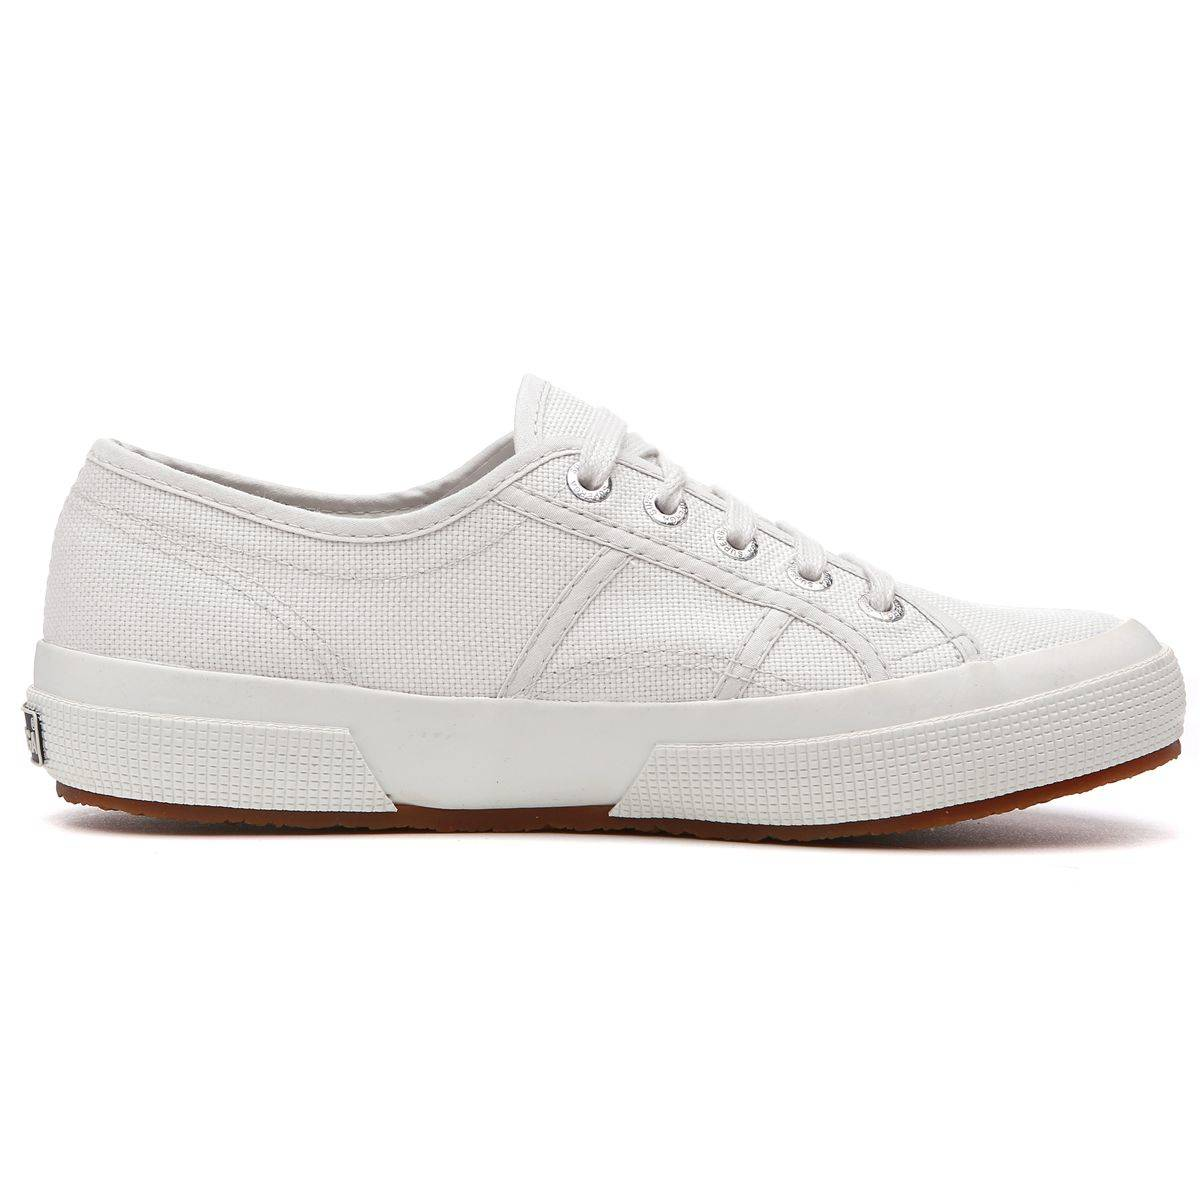 differently e8af9 2ab82 Superga 2750 Cotu Classic in weiss - S000010 901 | everysize